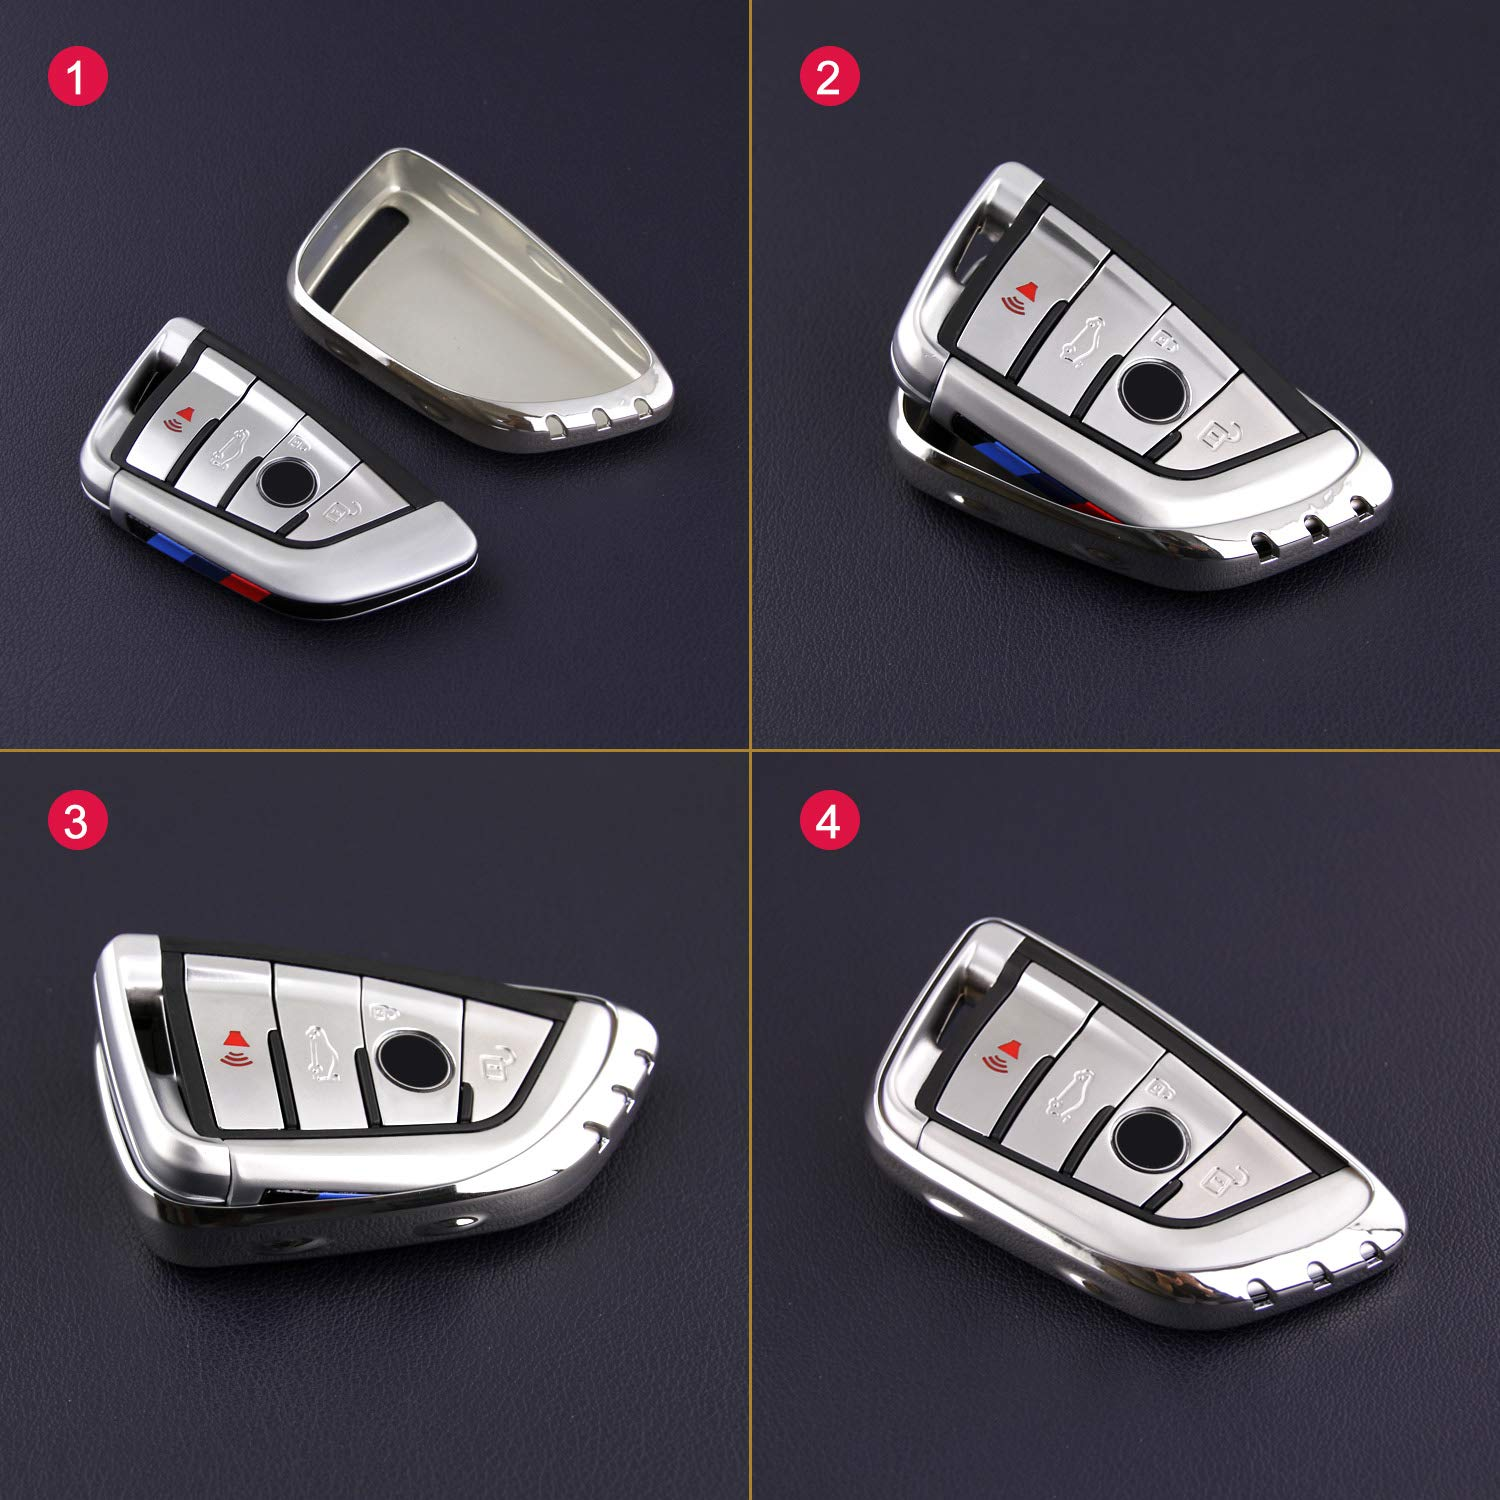 Key Case Cover for BMW 2 3 4 5 6 7 Series X3 X4 M2 M3 M4 M5 M6 Accessories Silver Fob Holder Keychain F22 F30 F36 F10 F12 F01 F25 F26 F87 F80 F82